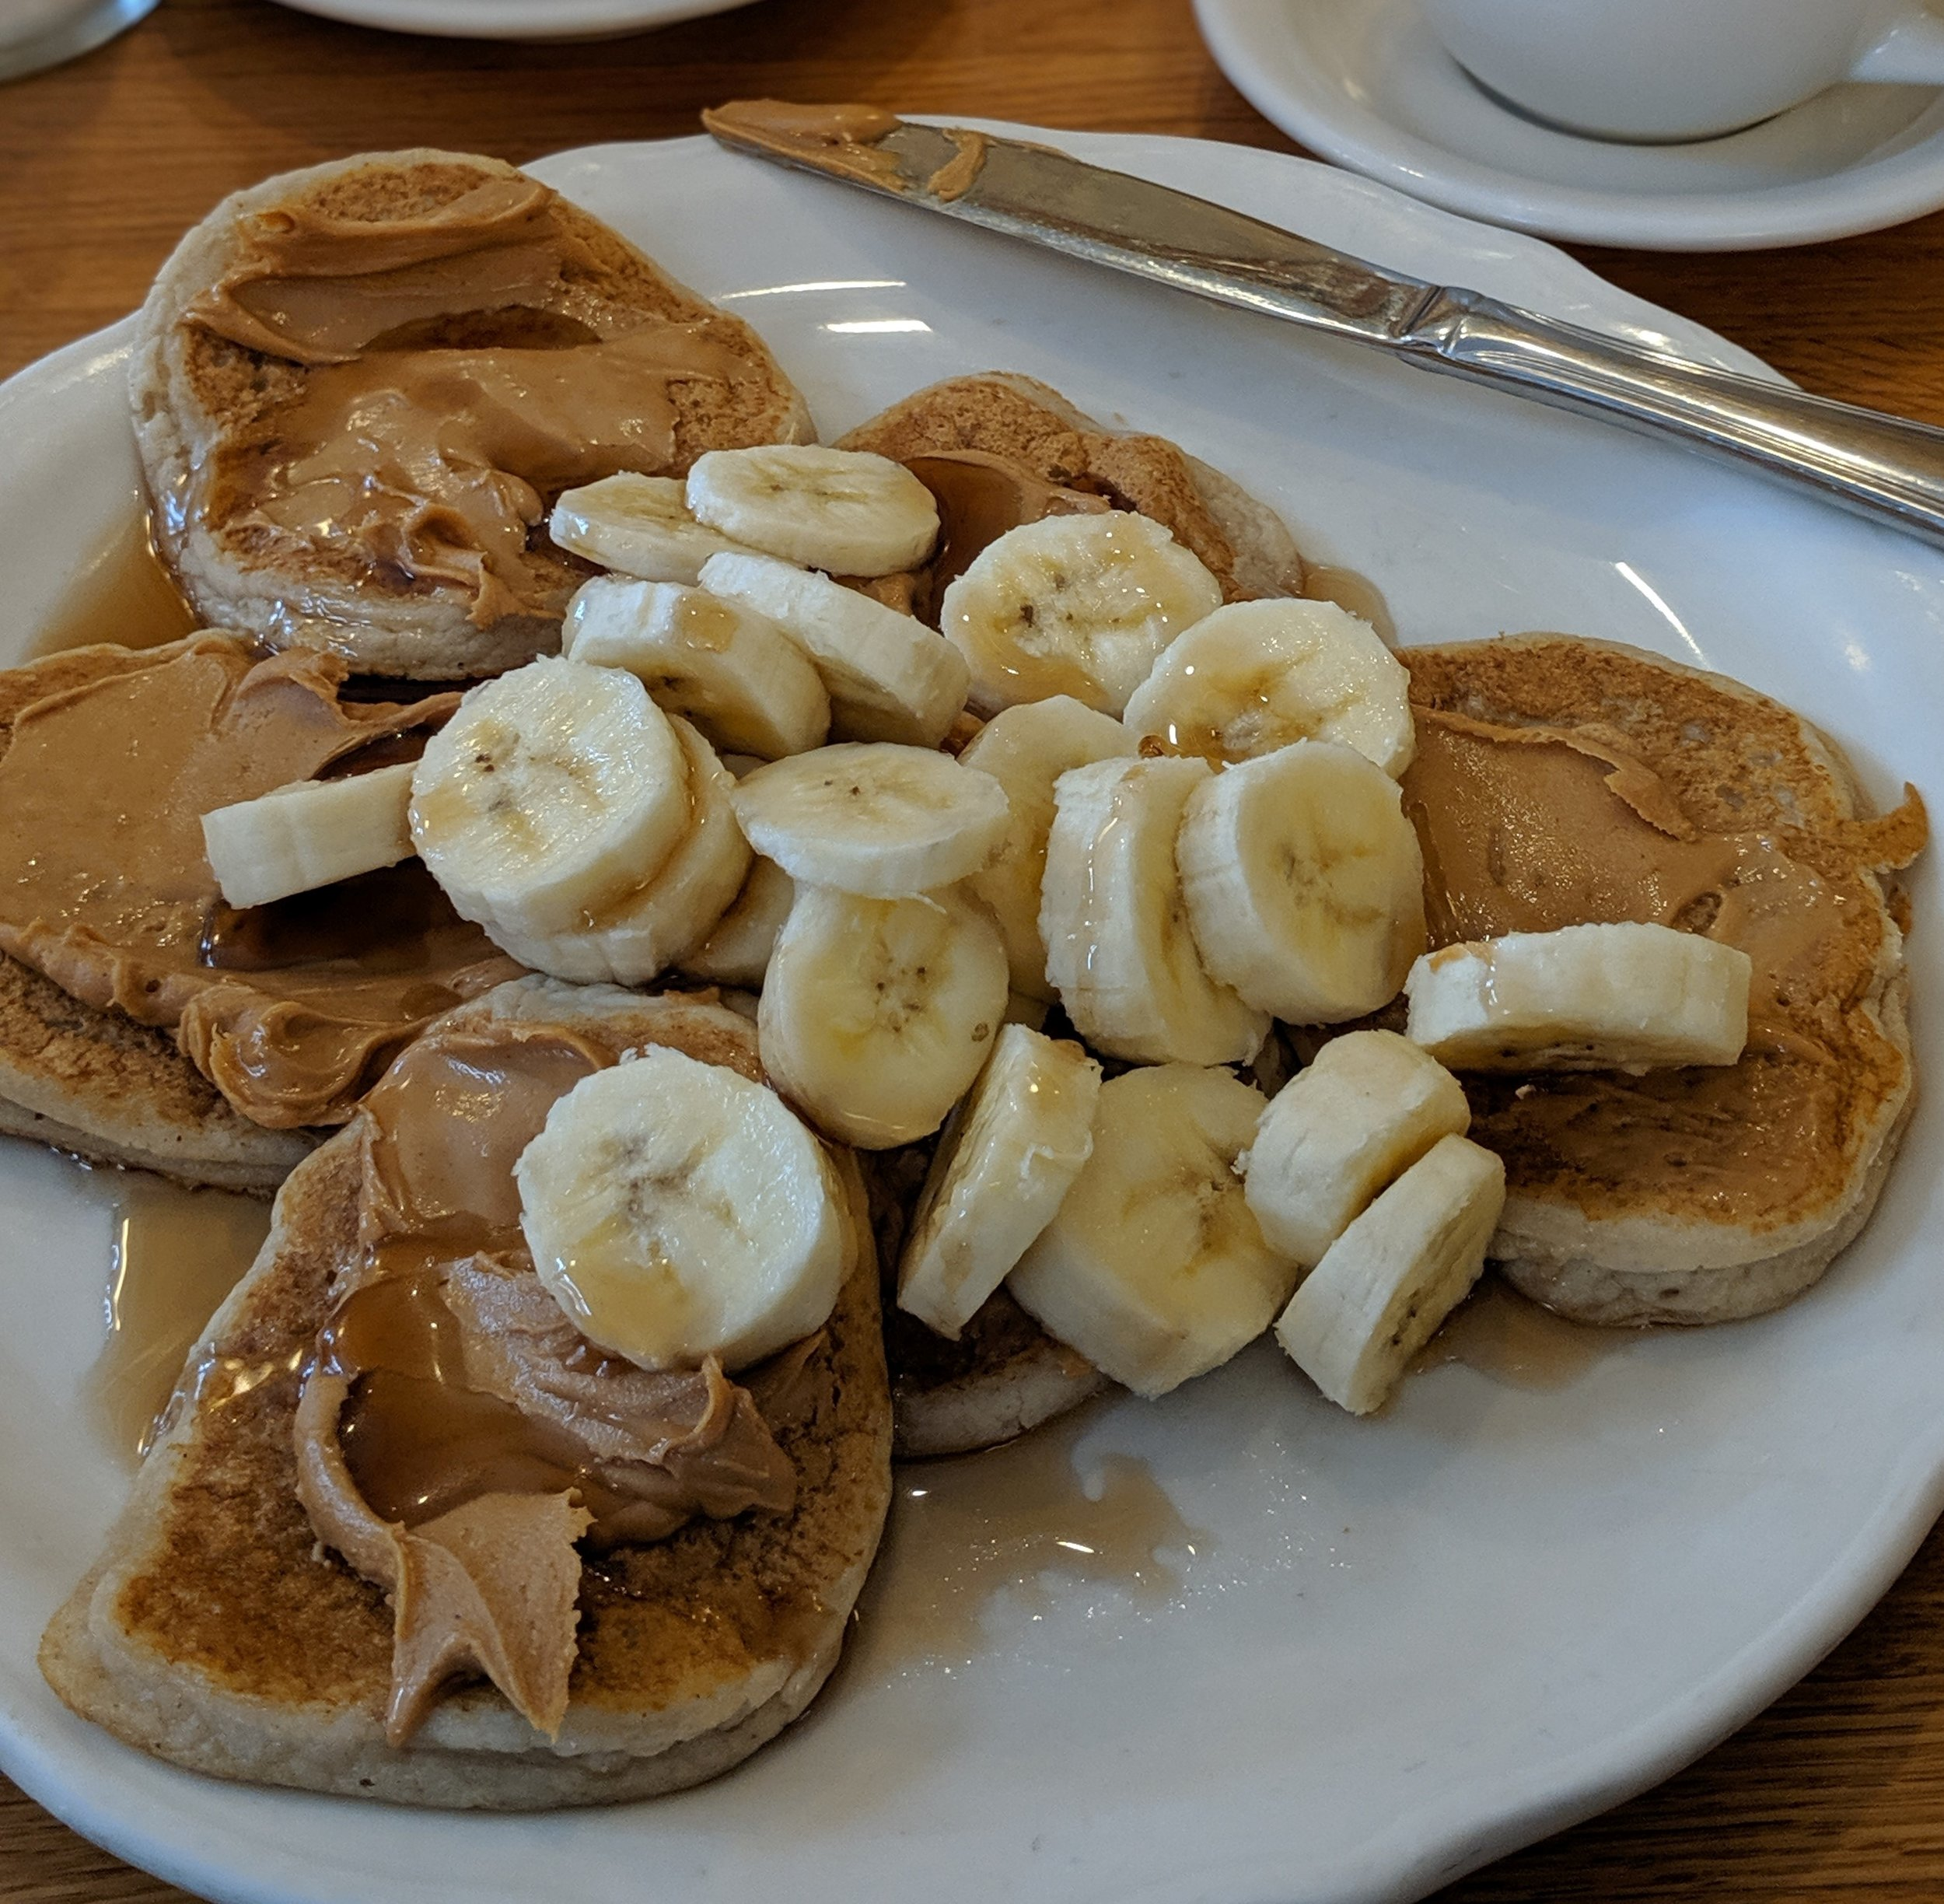 Peanut butter and banana smothered all over the top of these vegan pancakes at  Original Pancake House,  where I was very surprised and happy to see them on the menu!